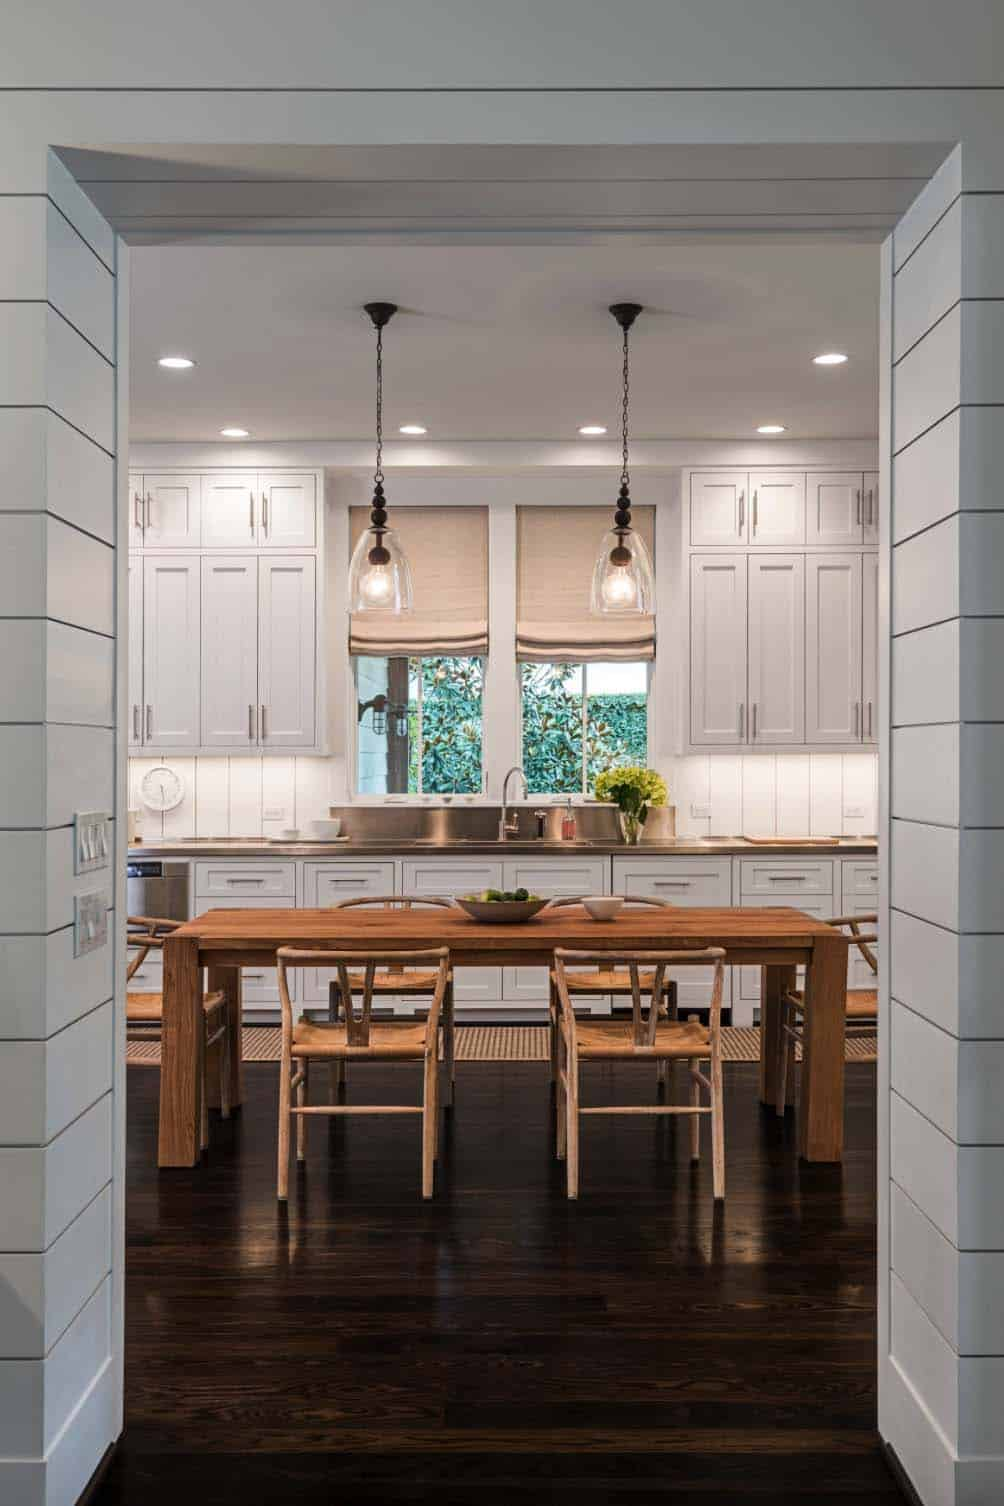 Farmhouse Style Home-Dillon Kyle Architects-09-1 Kindesign